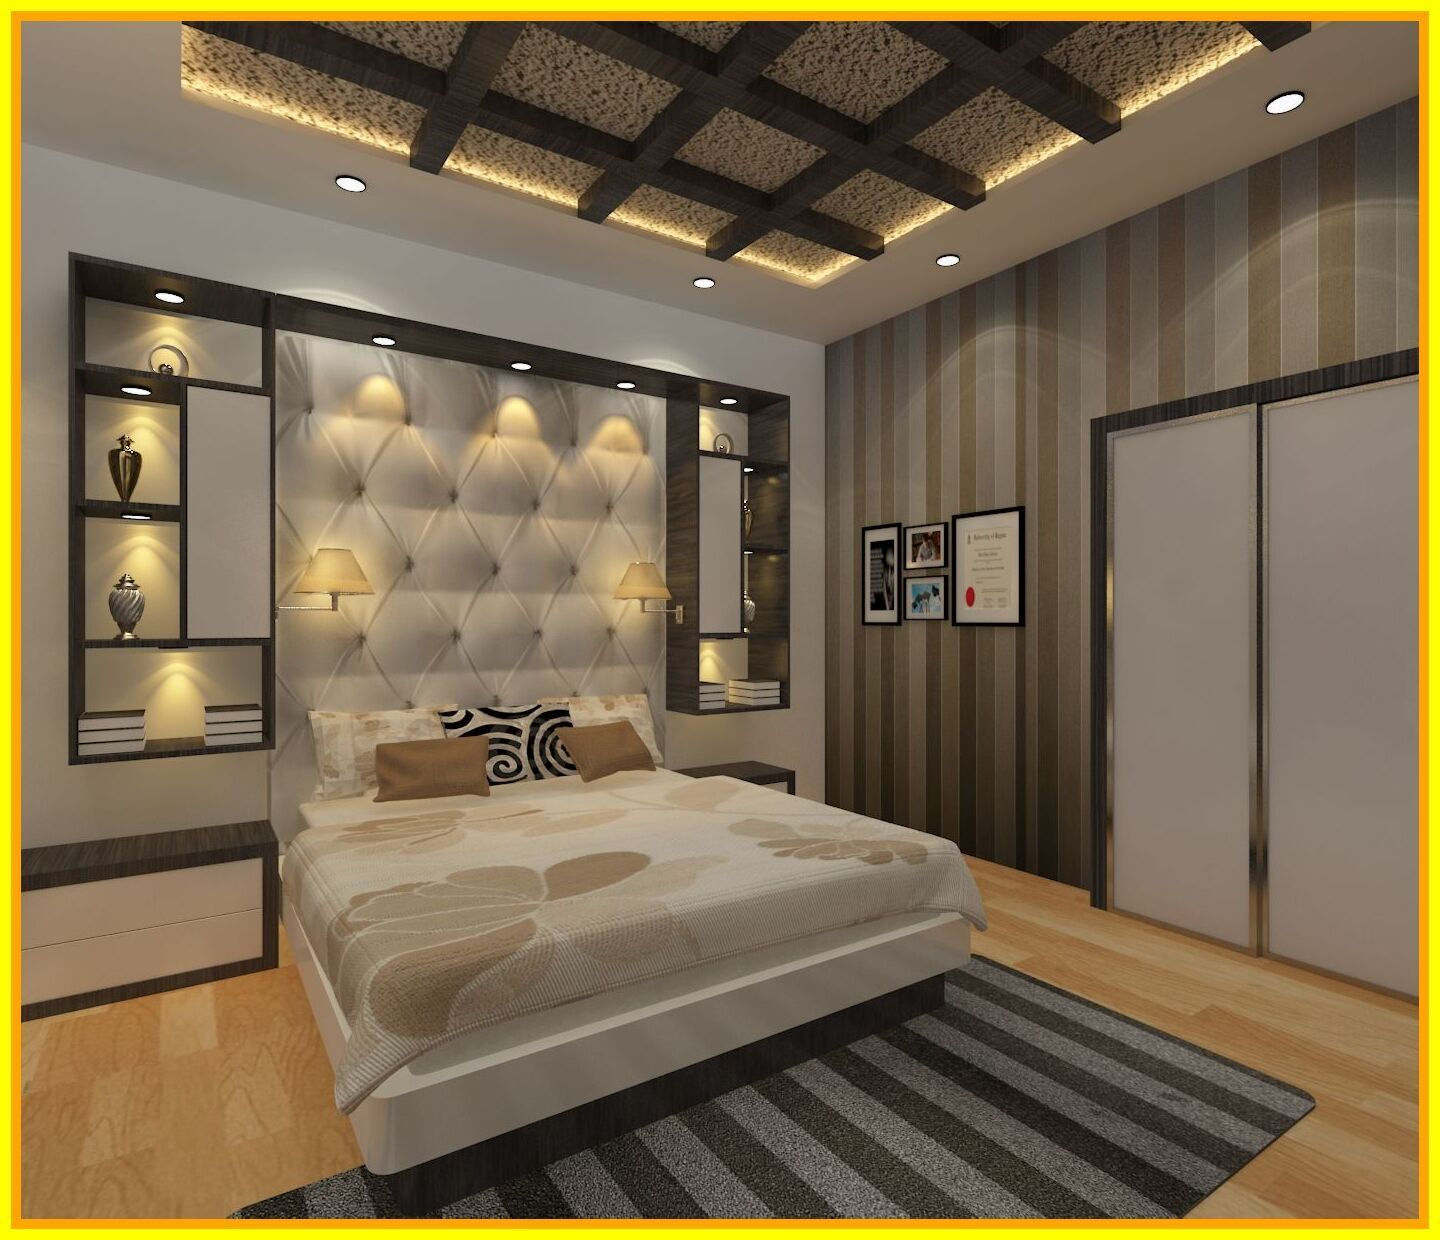 40 Reference Of Modern Master Bedroom Ideas 2018 In 2020 Bedroom False Ceiling Design Ceiling Design Bedroom False Ceiling Bedroom